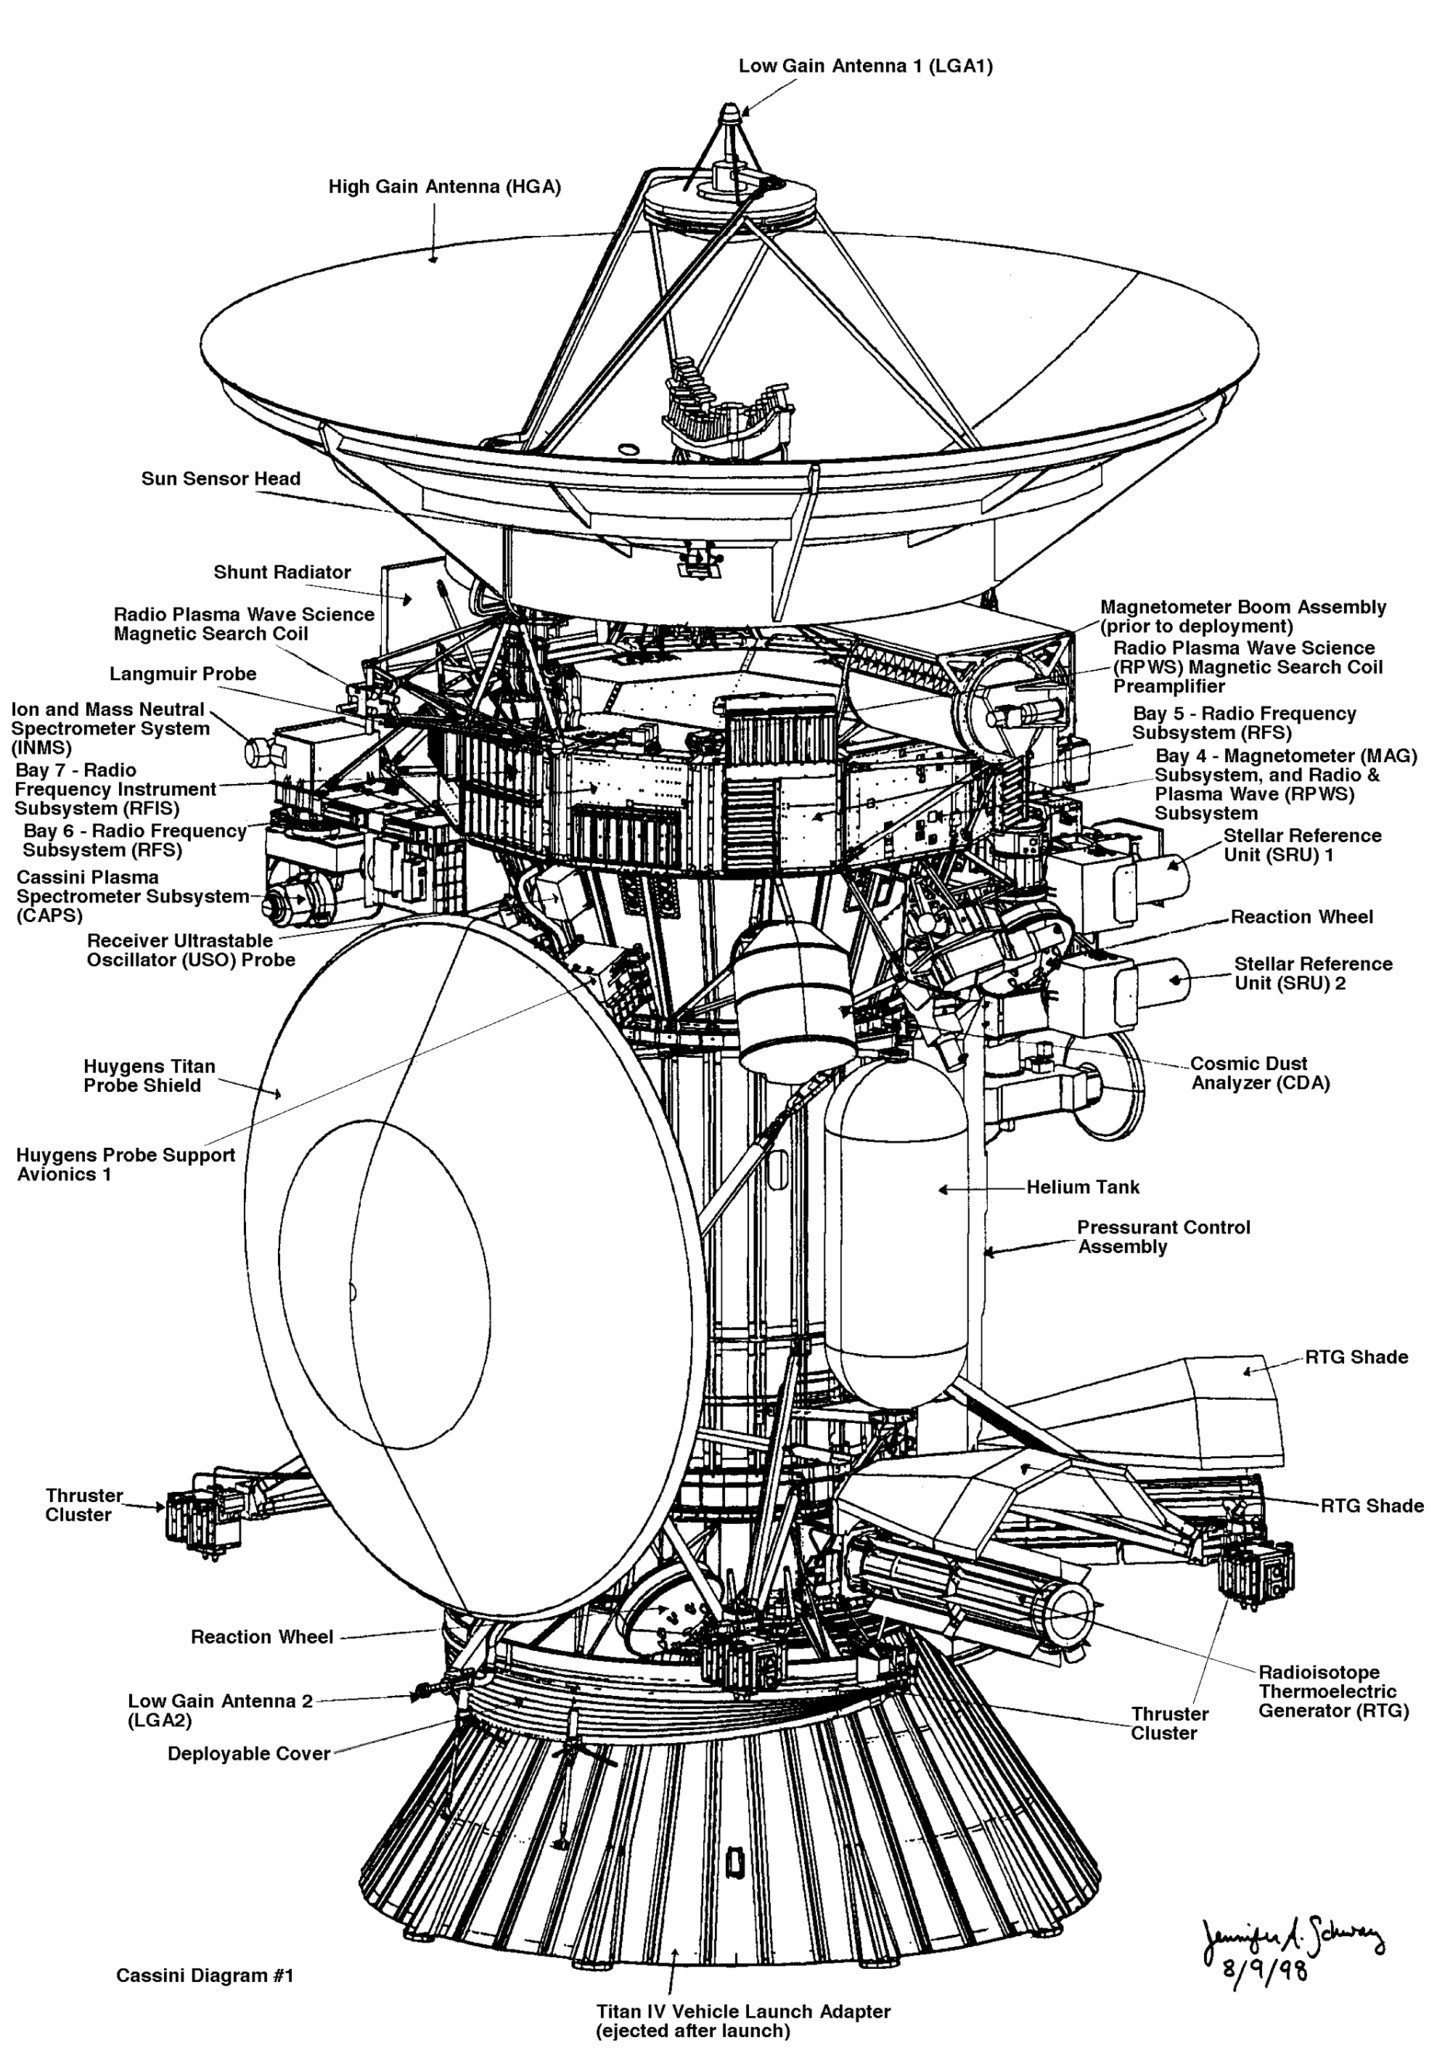 A diagram of the Cassini spacecraft and Huygens probe.